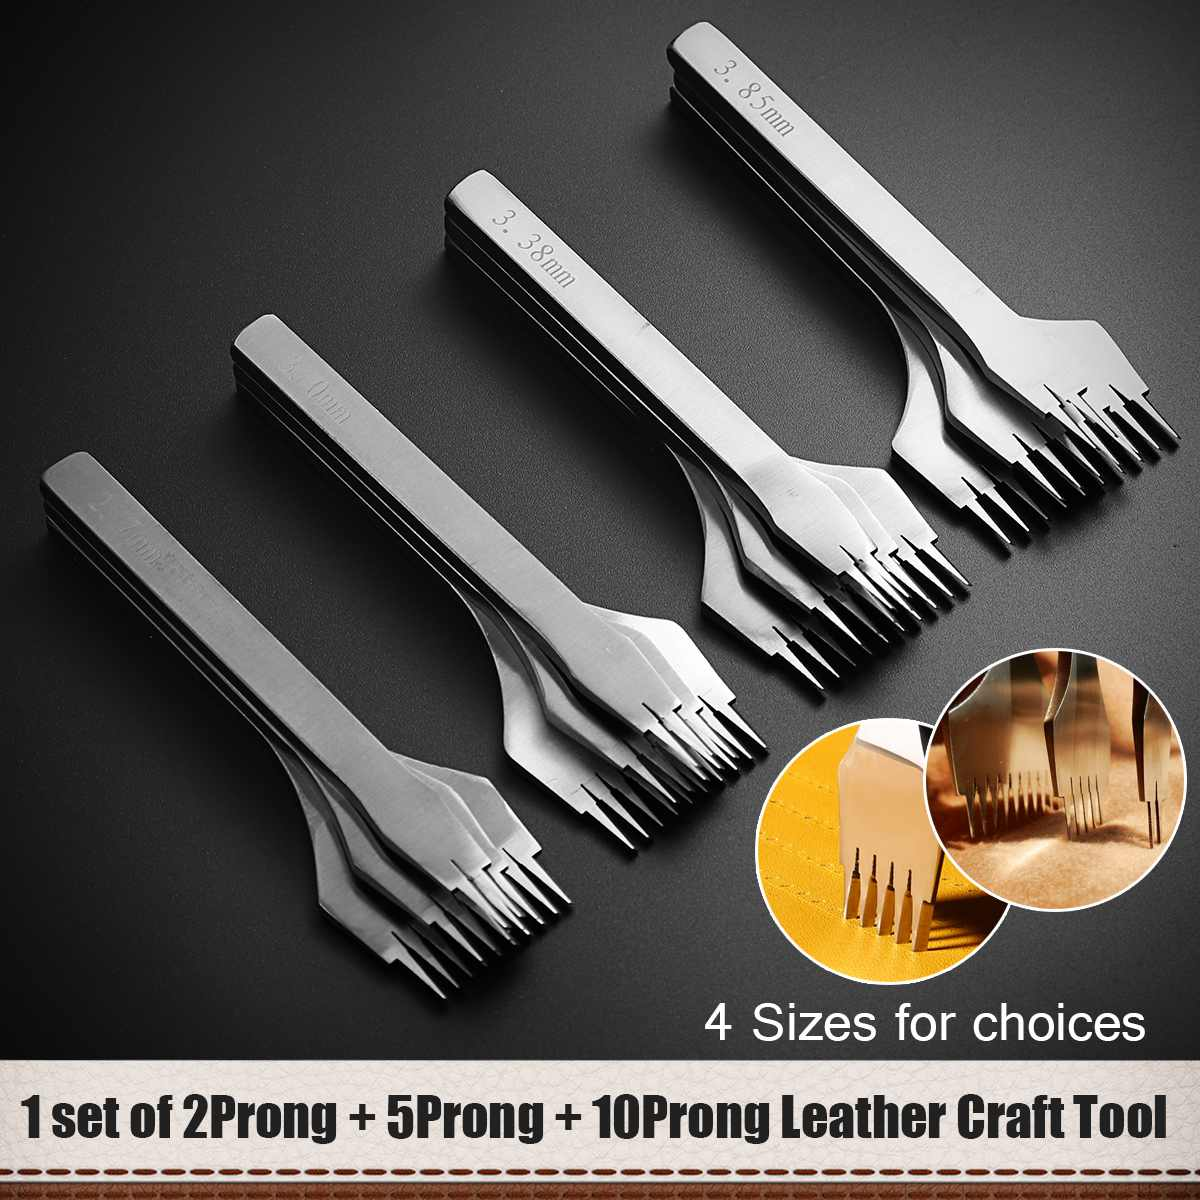 Leather Craft Set Hole Chisel Punches Stitching Steel Tool 3Pcs for Clothe Designer Housewife Strength Steel Strong Texture NeatLeather Craft Set Hole Chisel Punches Stitching Steel Tool 3Pcs for Clothe Designer Housewife Strength Steel Strong Texture Neat